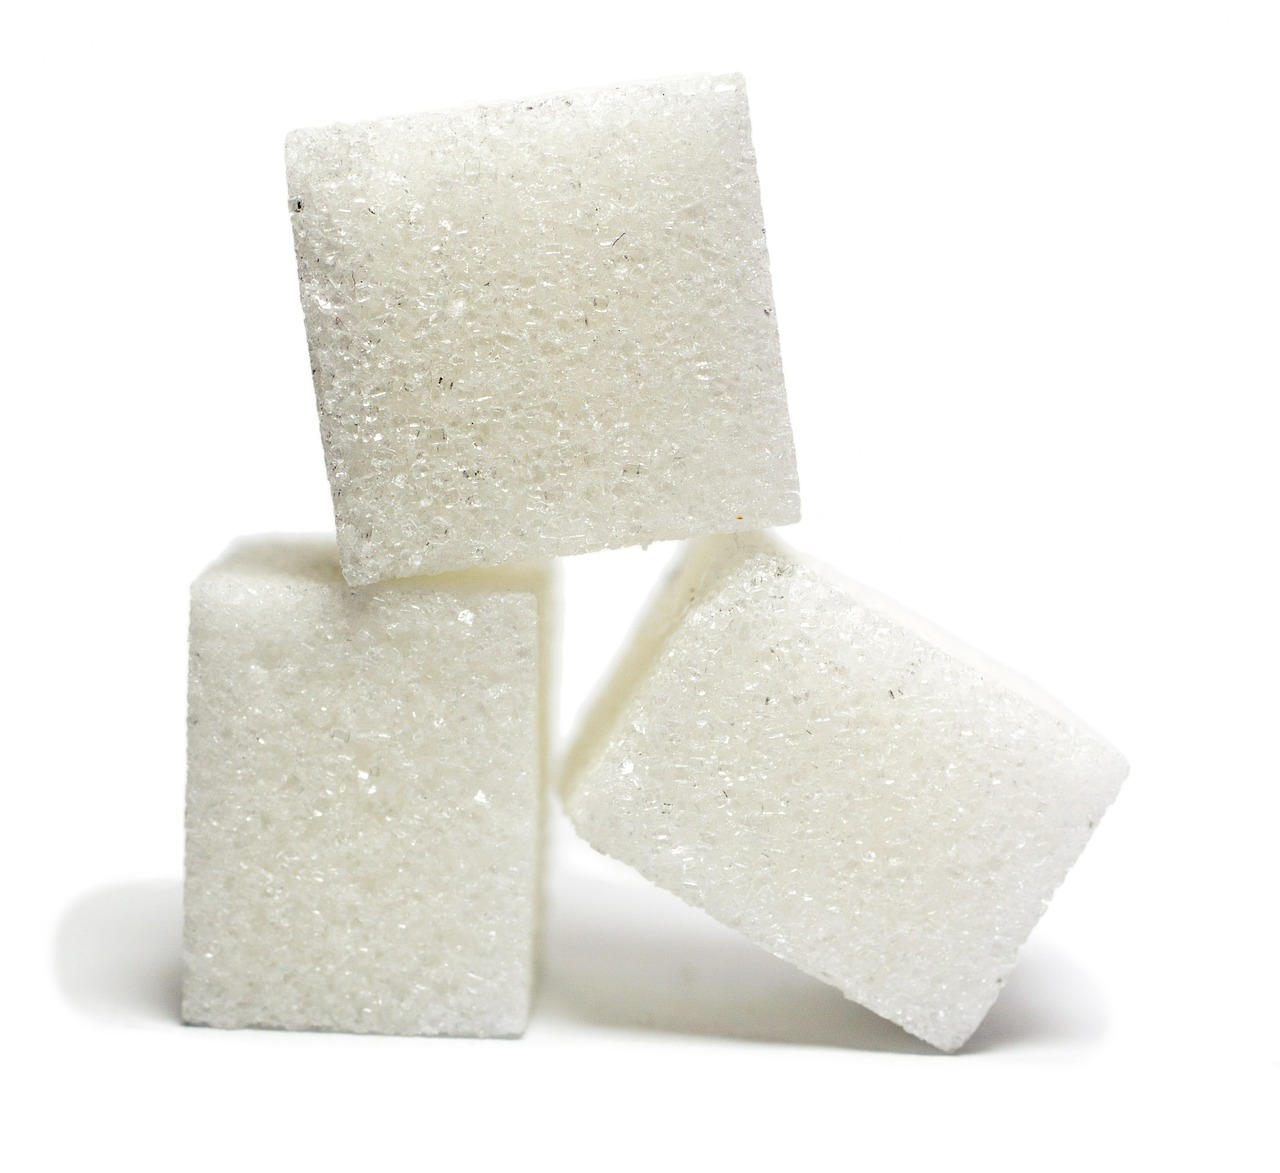 What does suger do to your brain?